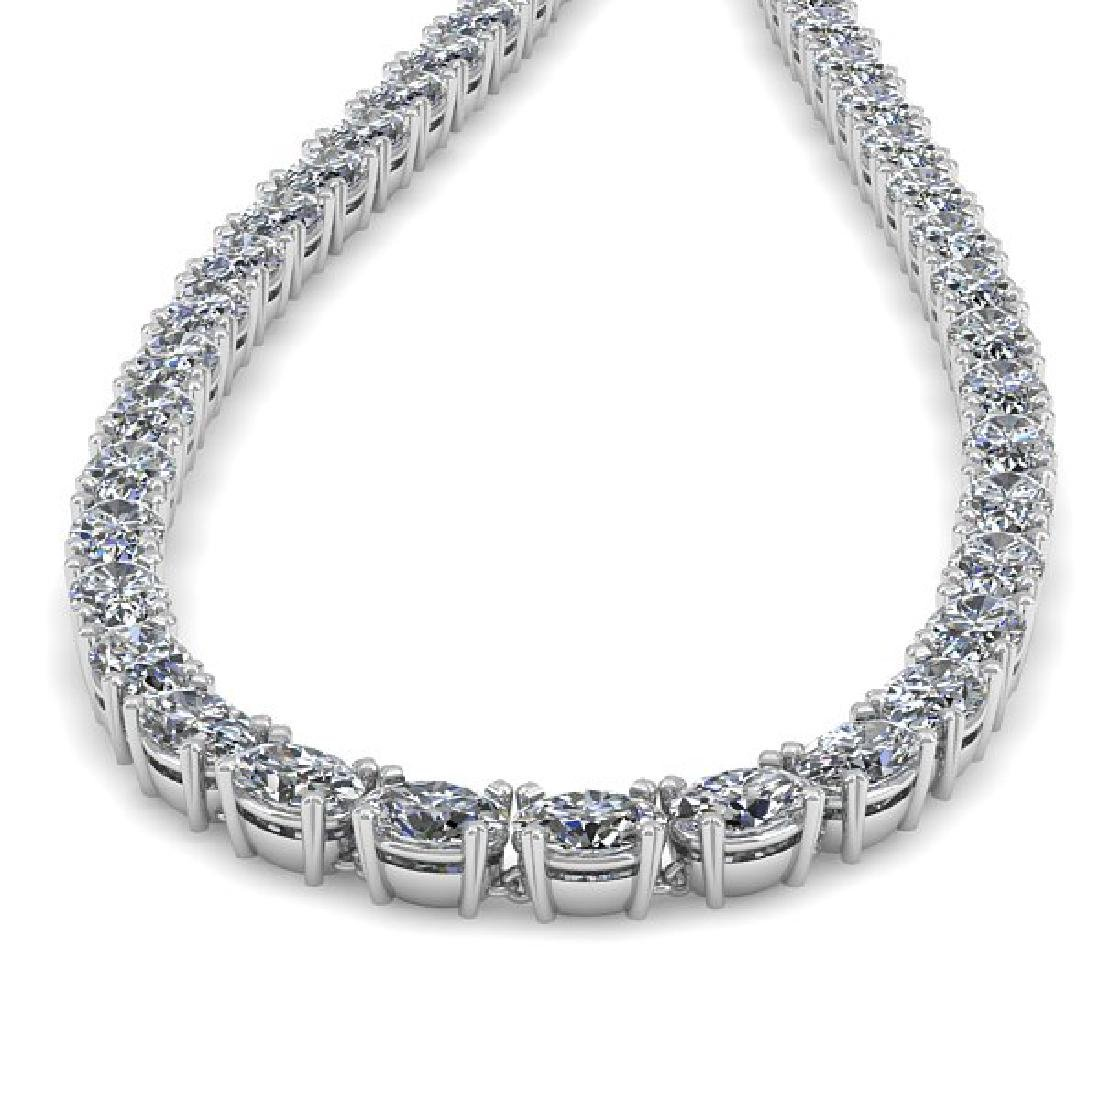 35 CTW Oval Cut Certified SI Diamond Necklace 14K White - 2